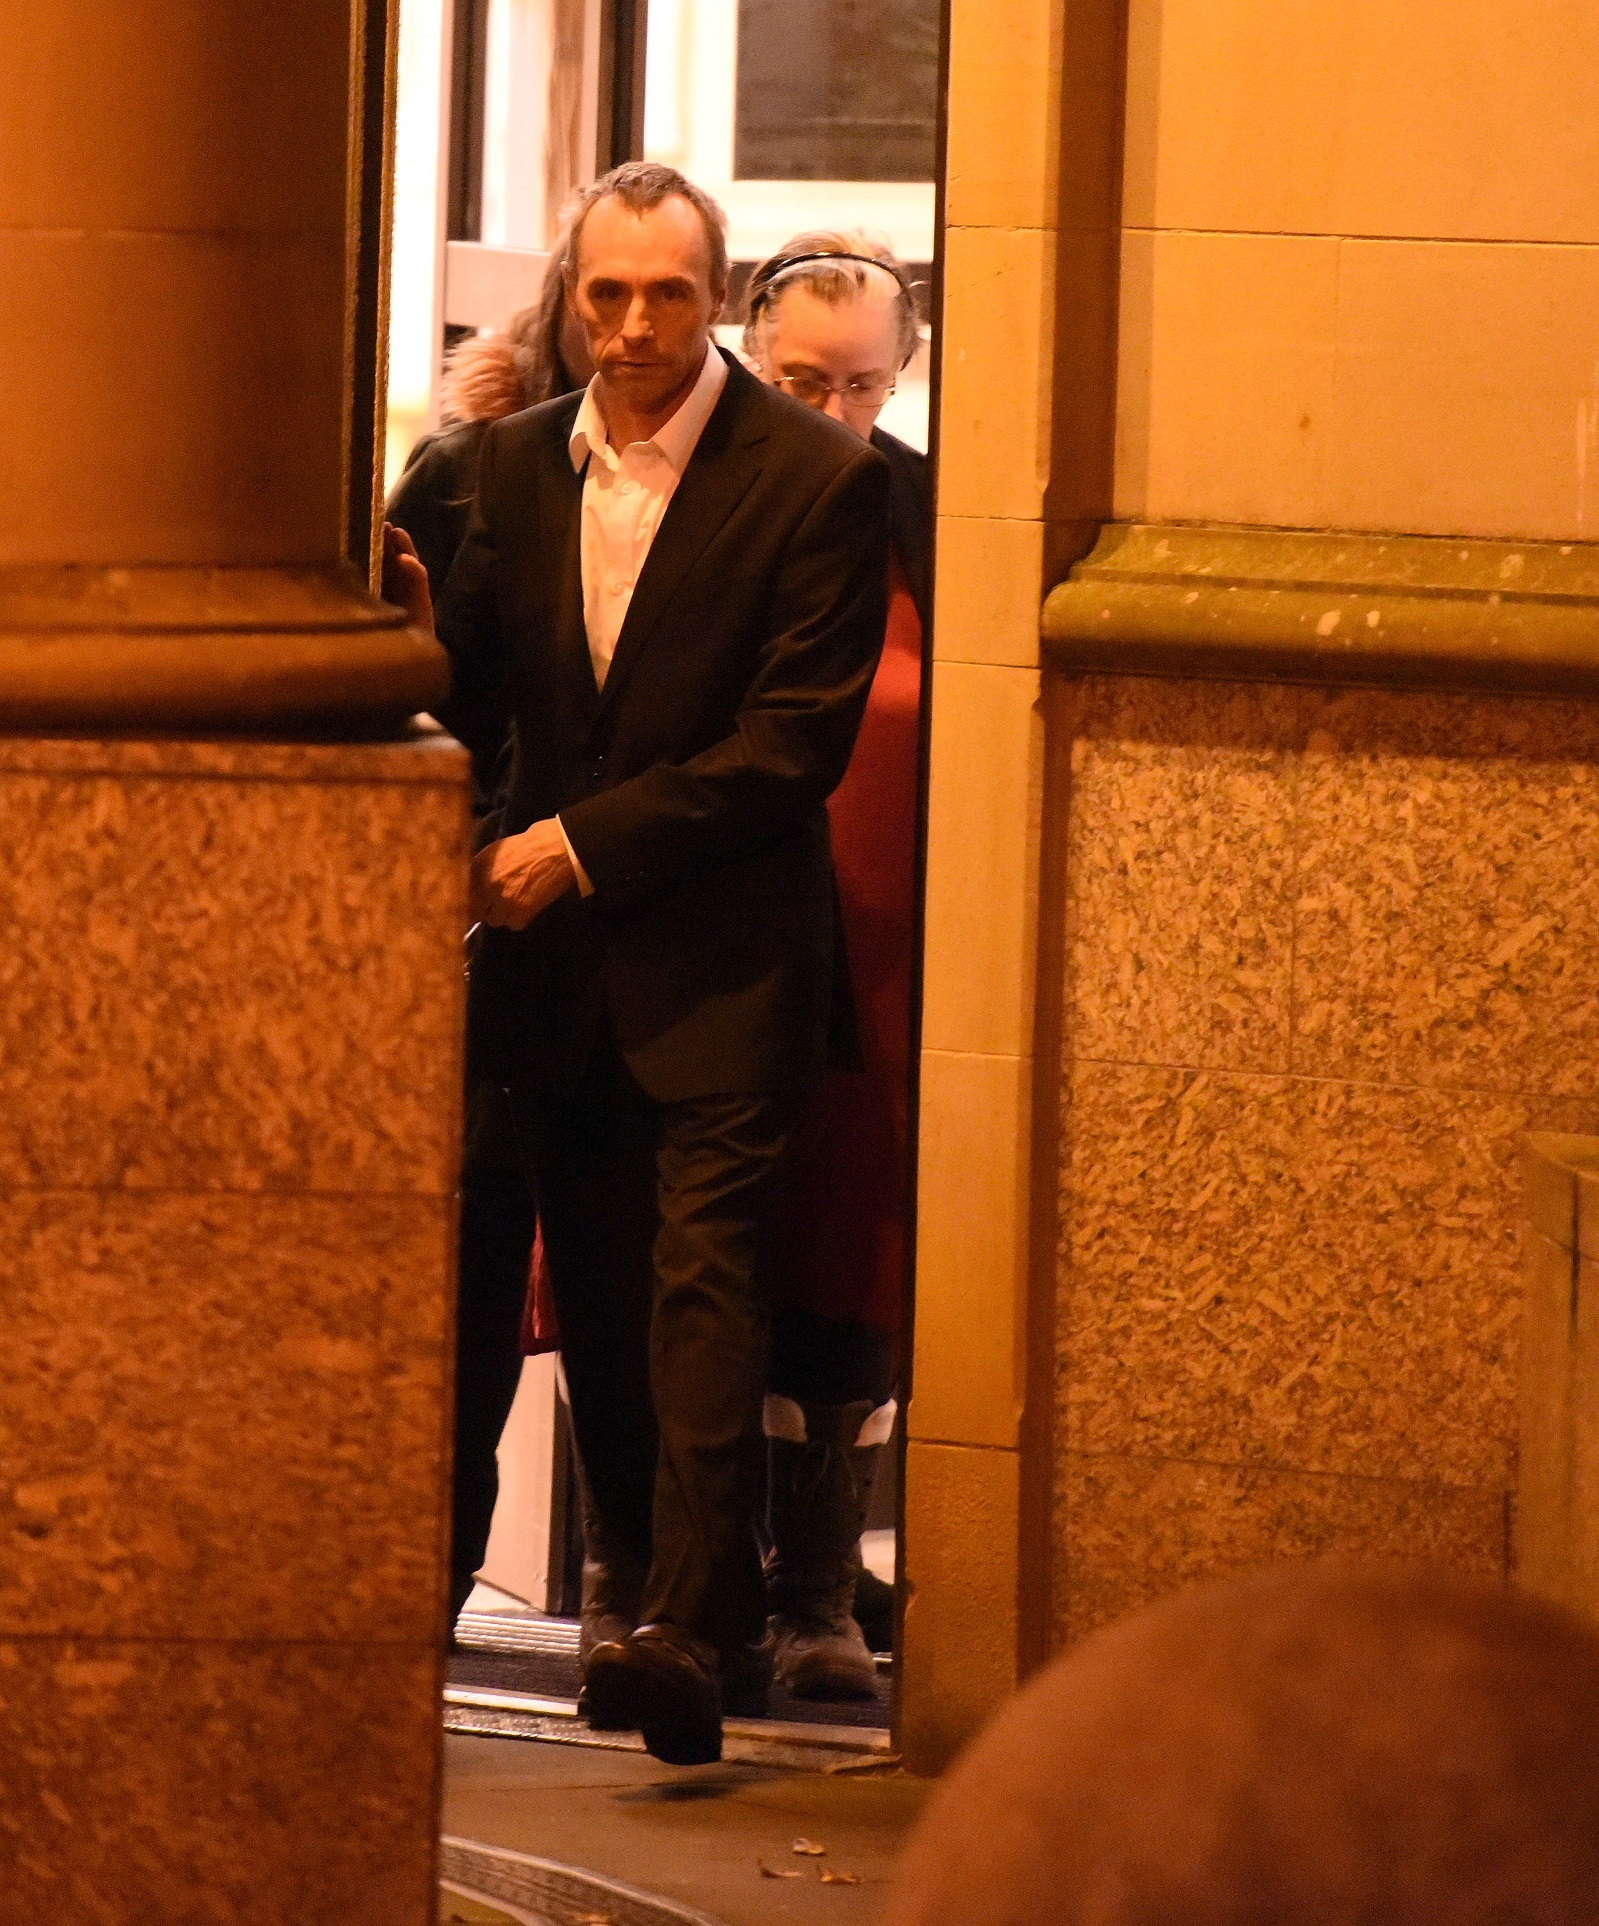 Helensburgh martial arts coach repeatedly raped disabled woman